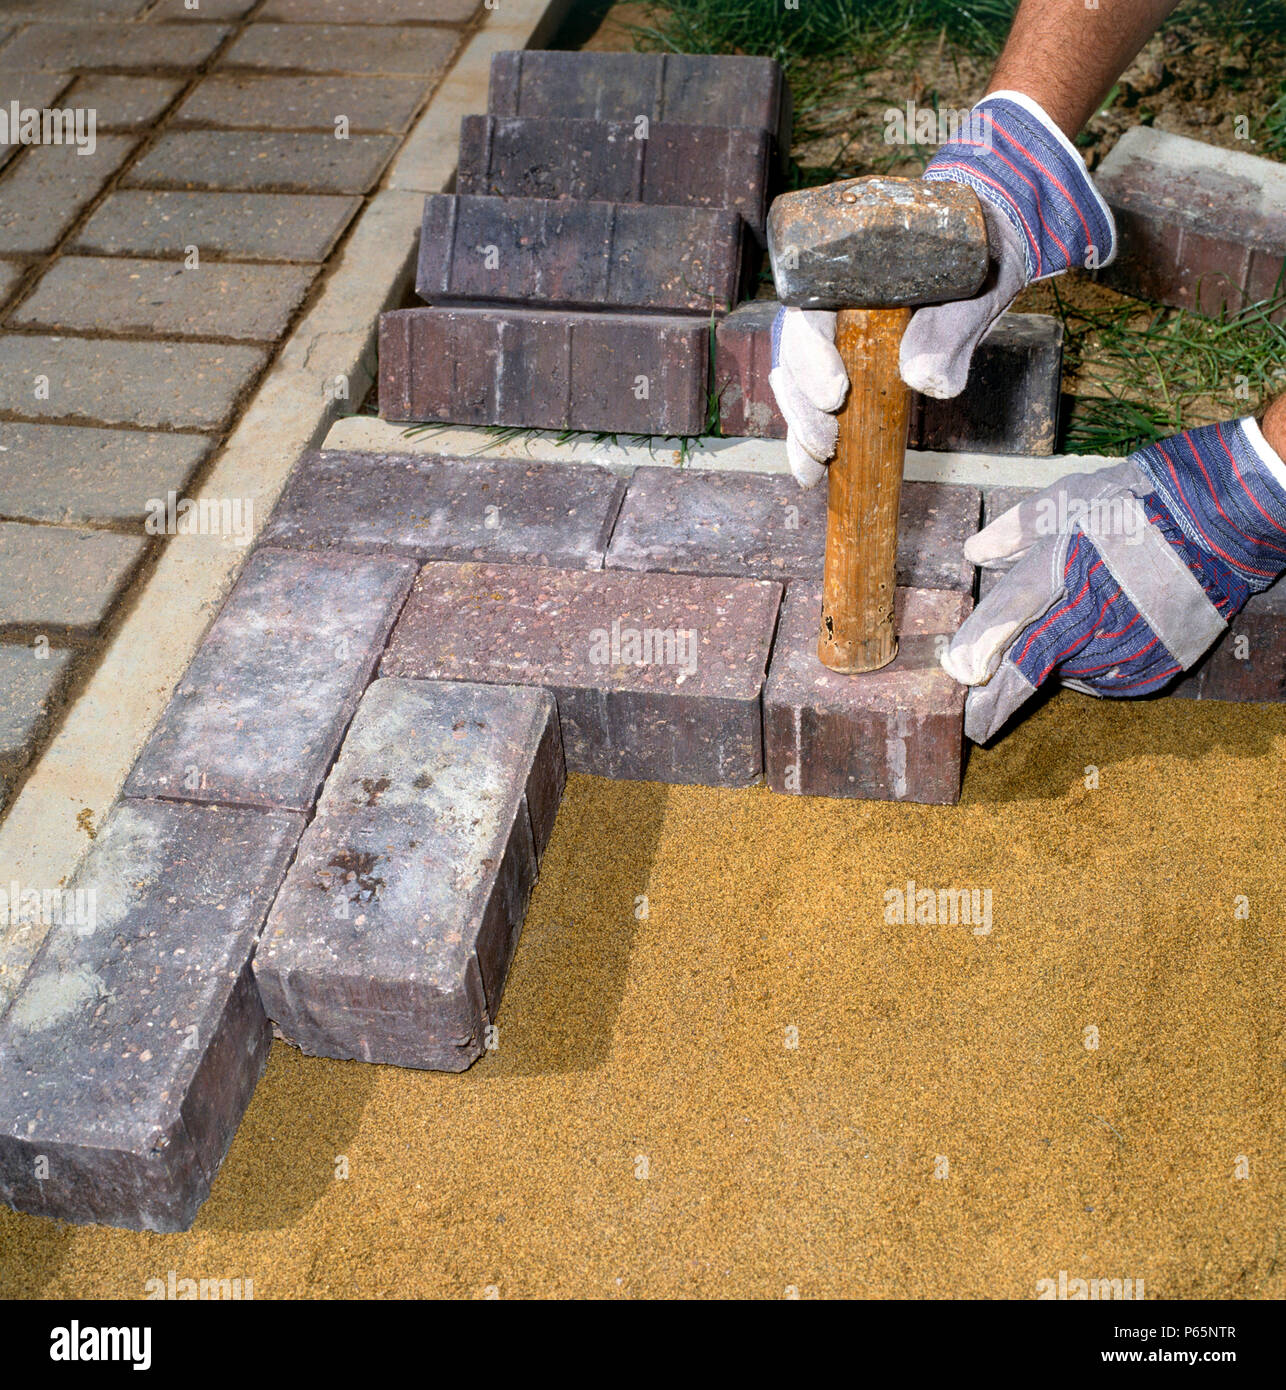 Laying Paving Stones In A Front Garden Stock Photo Alamy